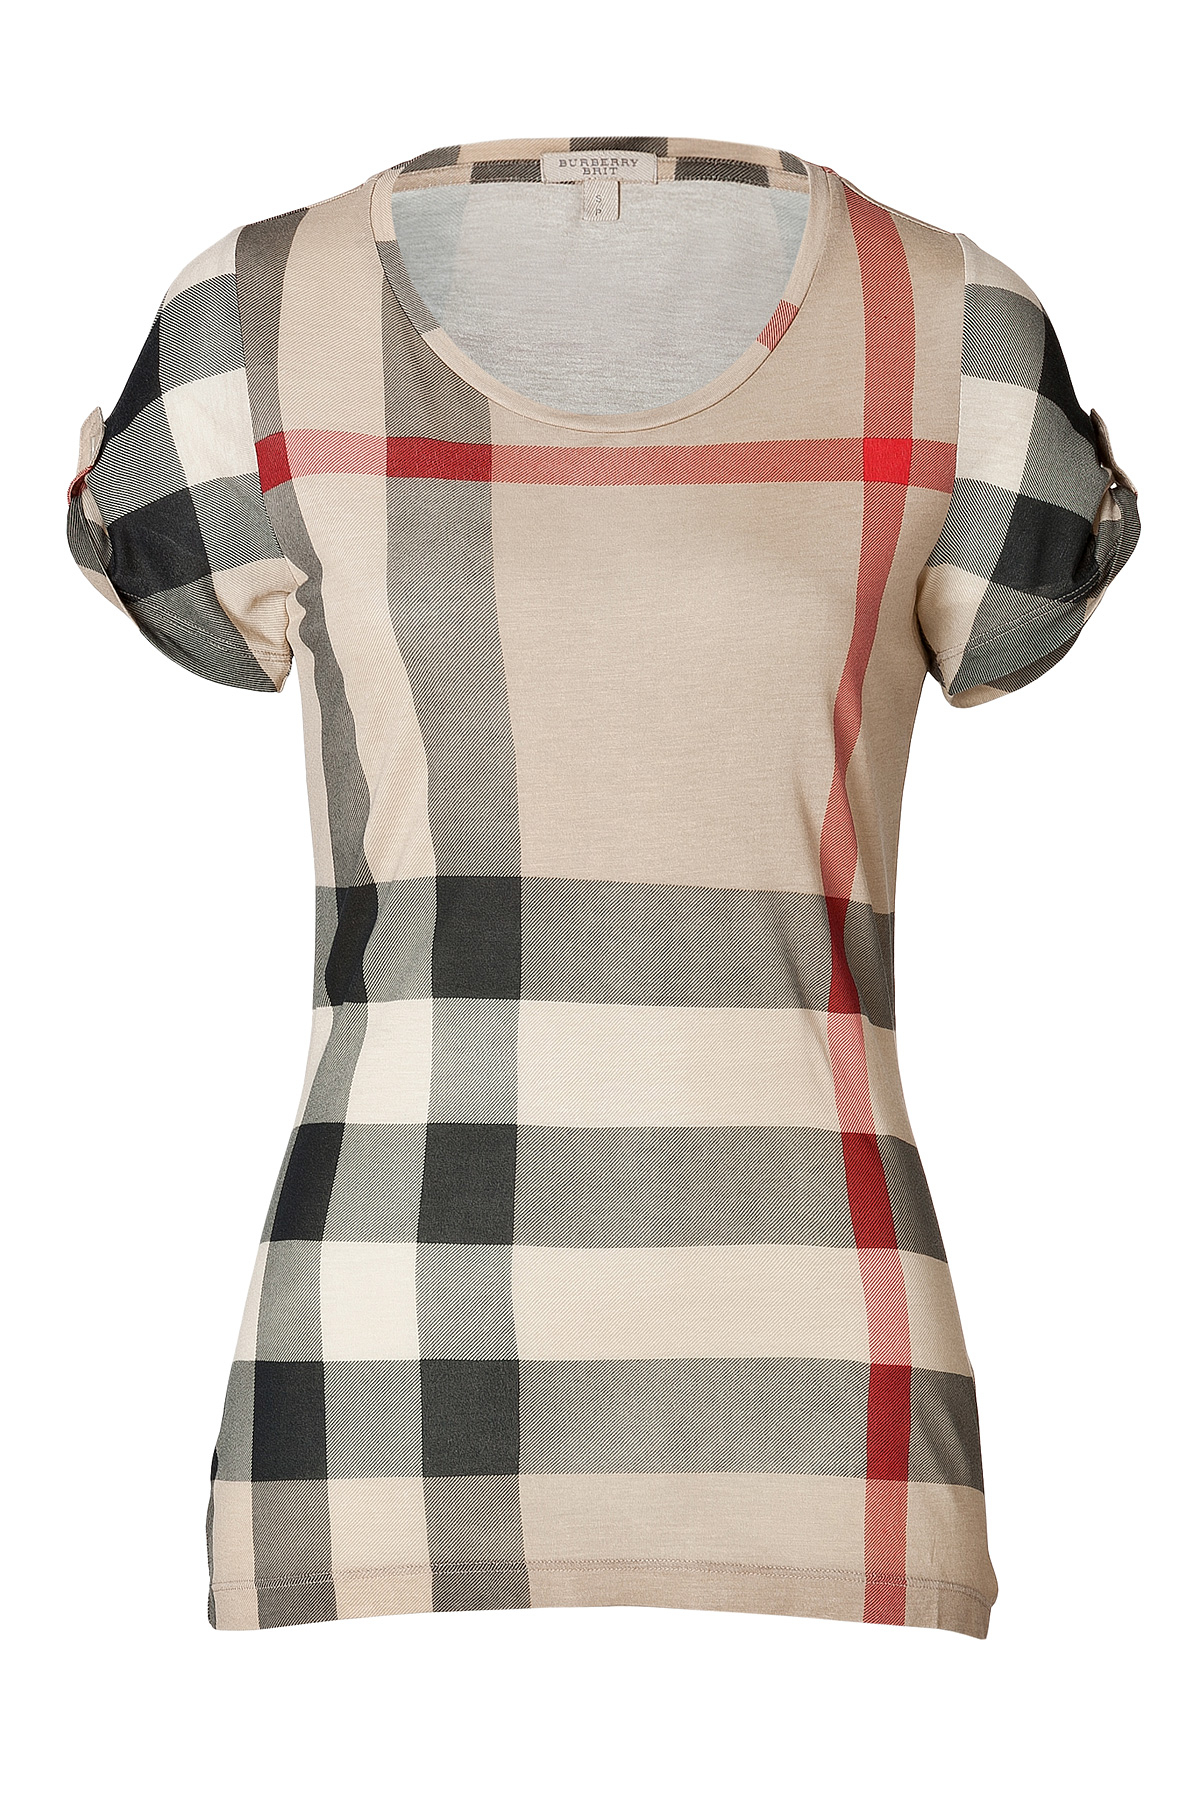 Burberry brit giant check short sleeve t shirt in new for Where are burberry shirts made